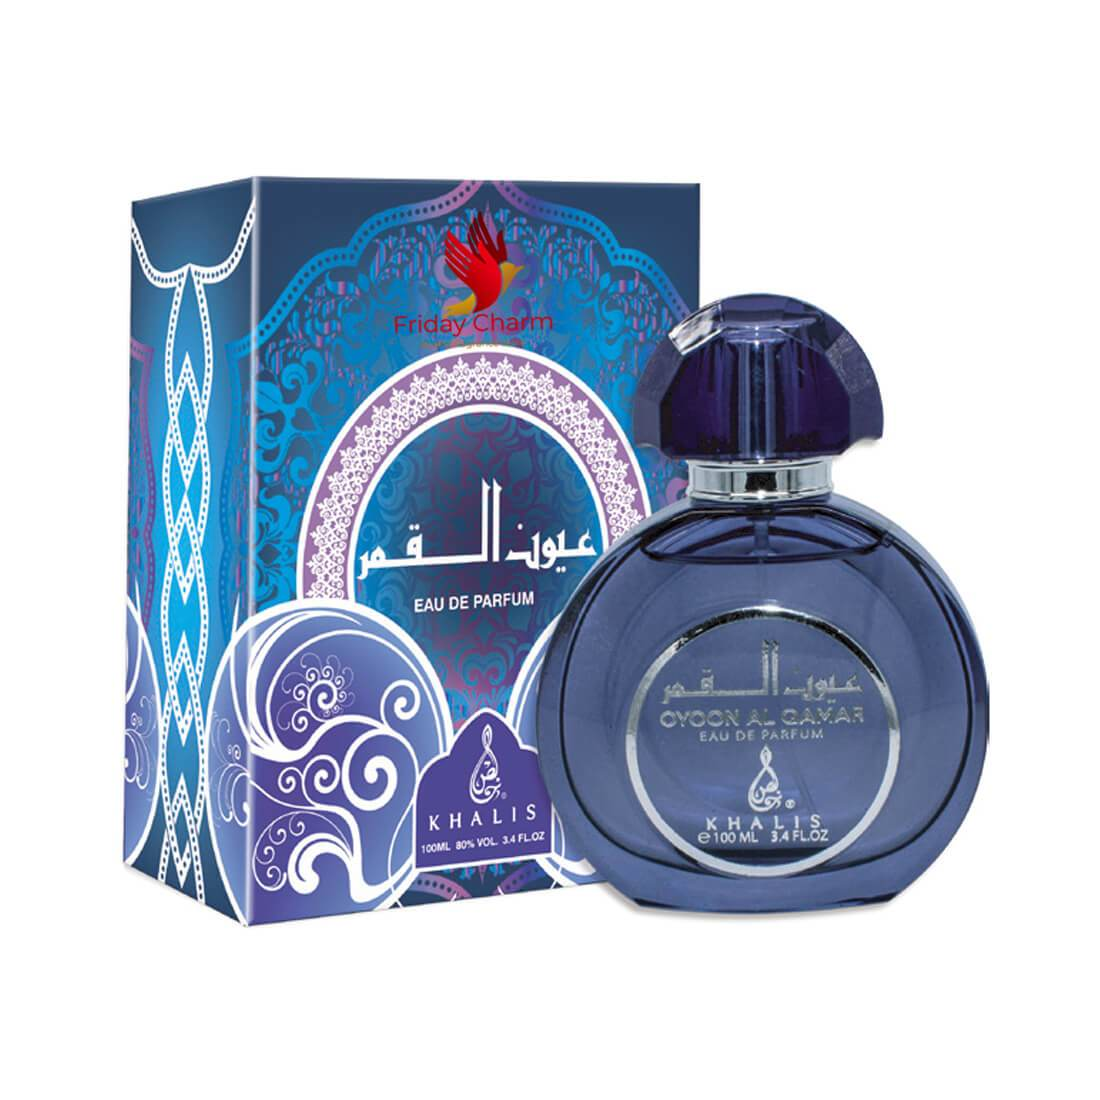 Khalis Oyoon Al Qamar Fragrance Spray - 100ml